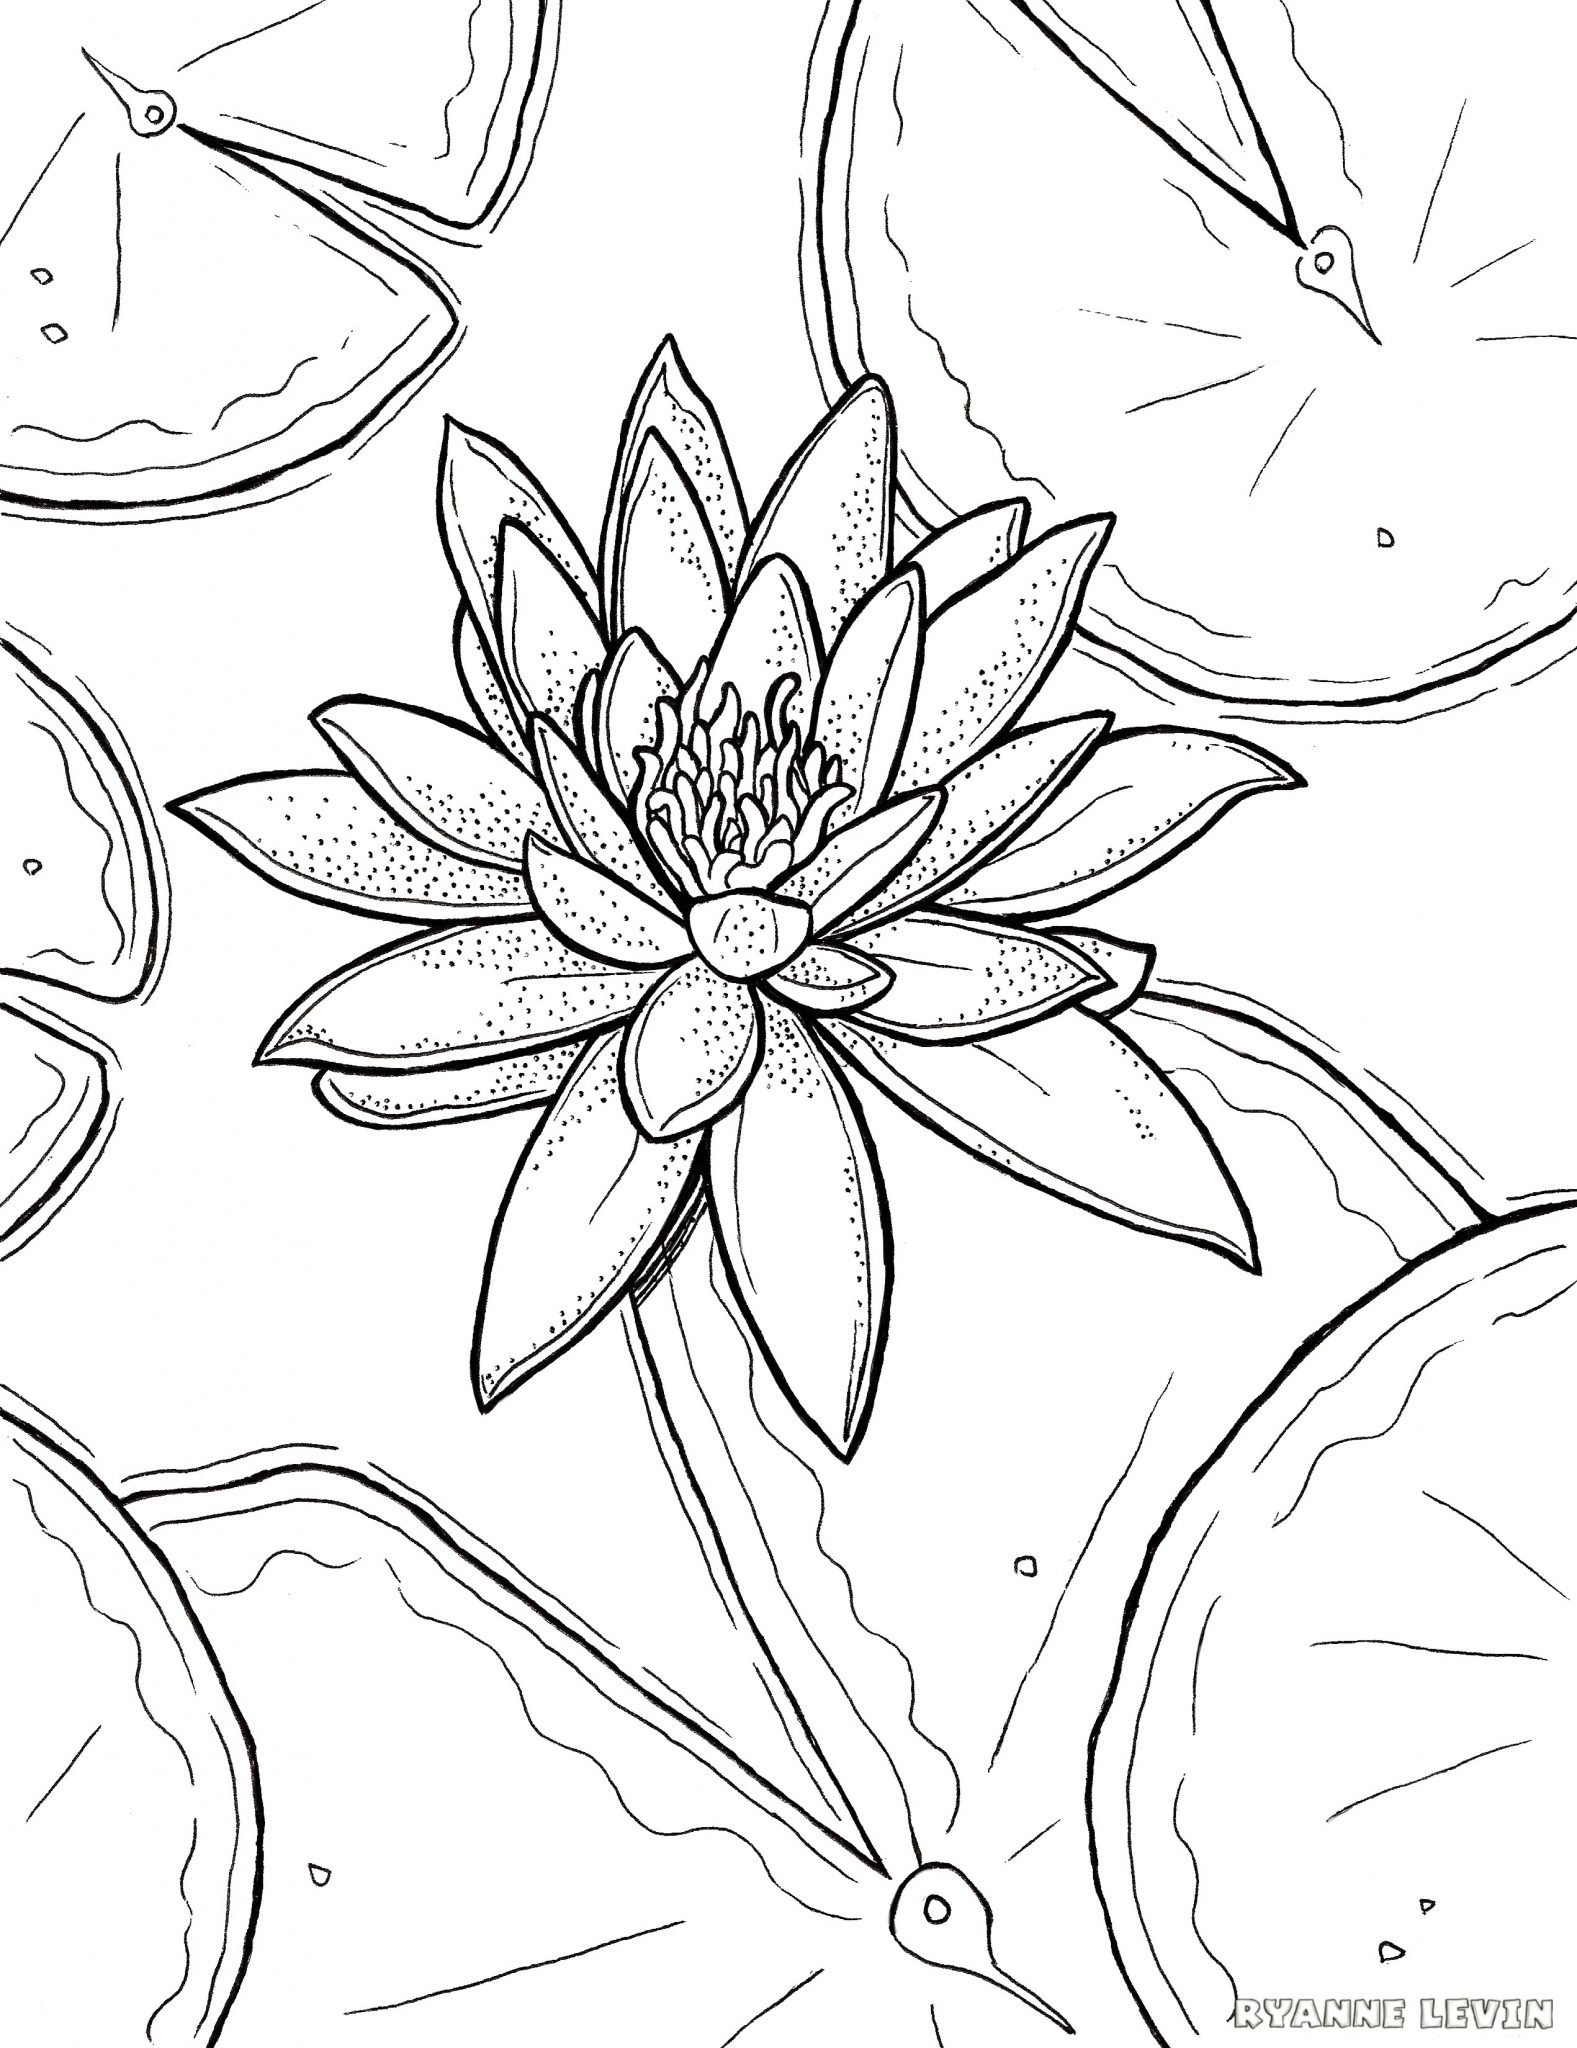 Coloring pages water - Free Printable Water Lily Coloring Page Download